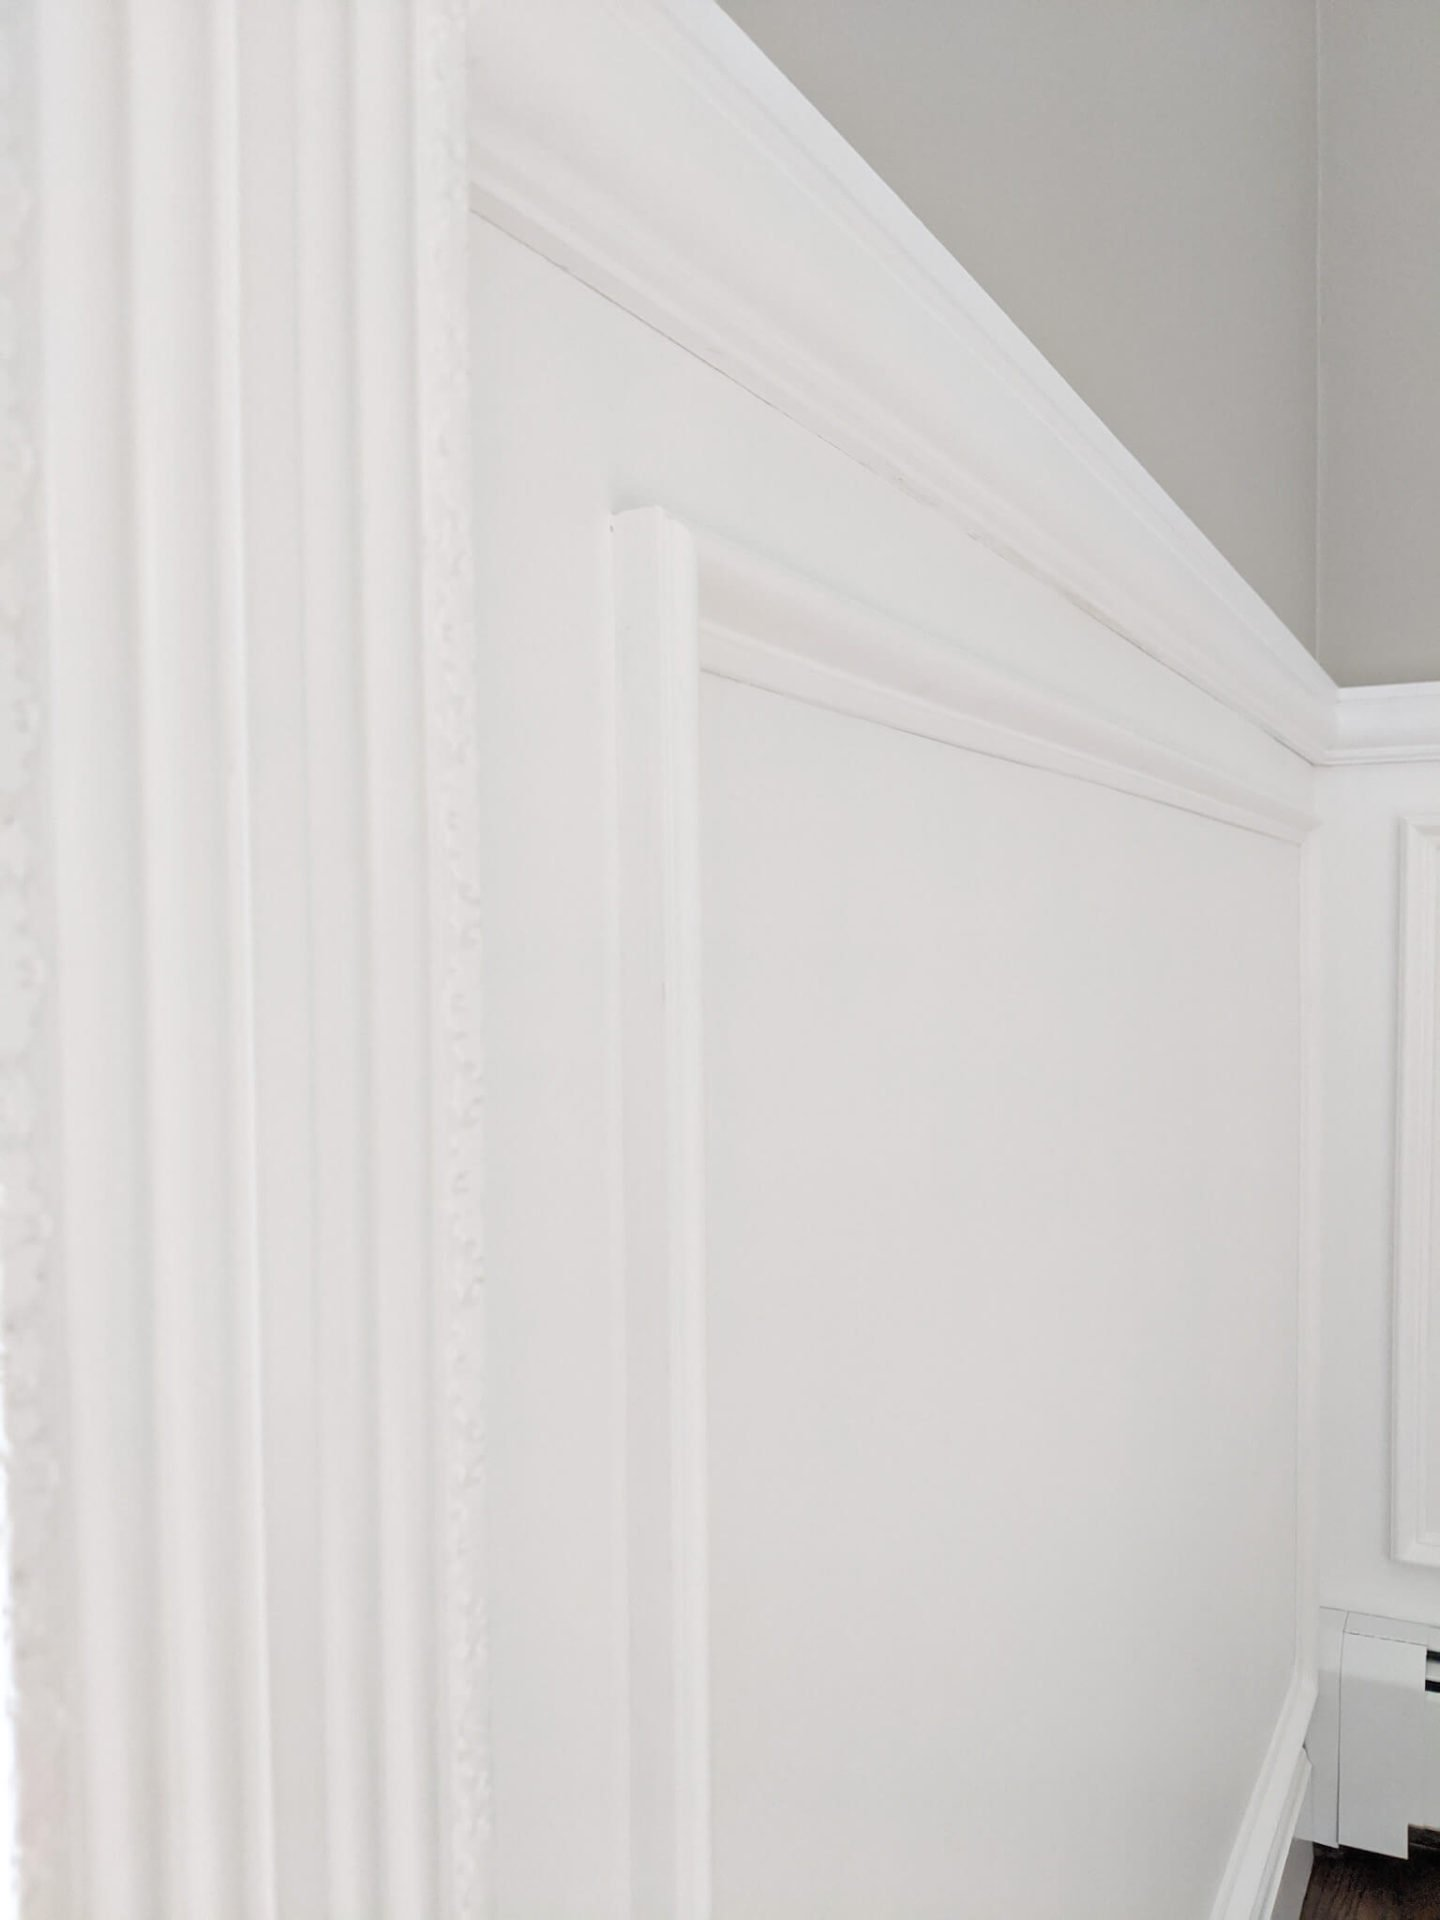 In this guide that covers how to install picture frame molding, you'll learn how to install molding that will give you results like this photo show.